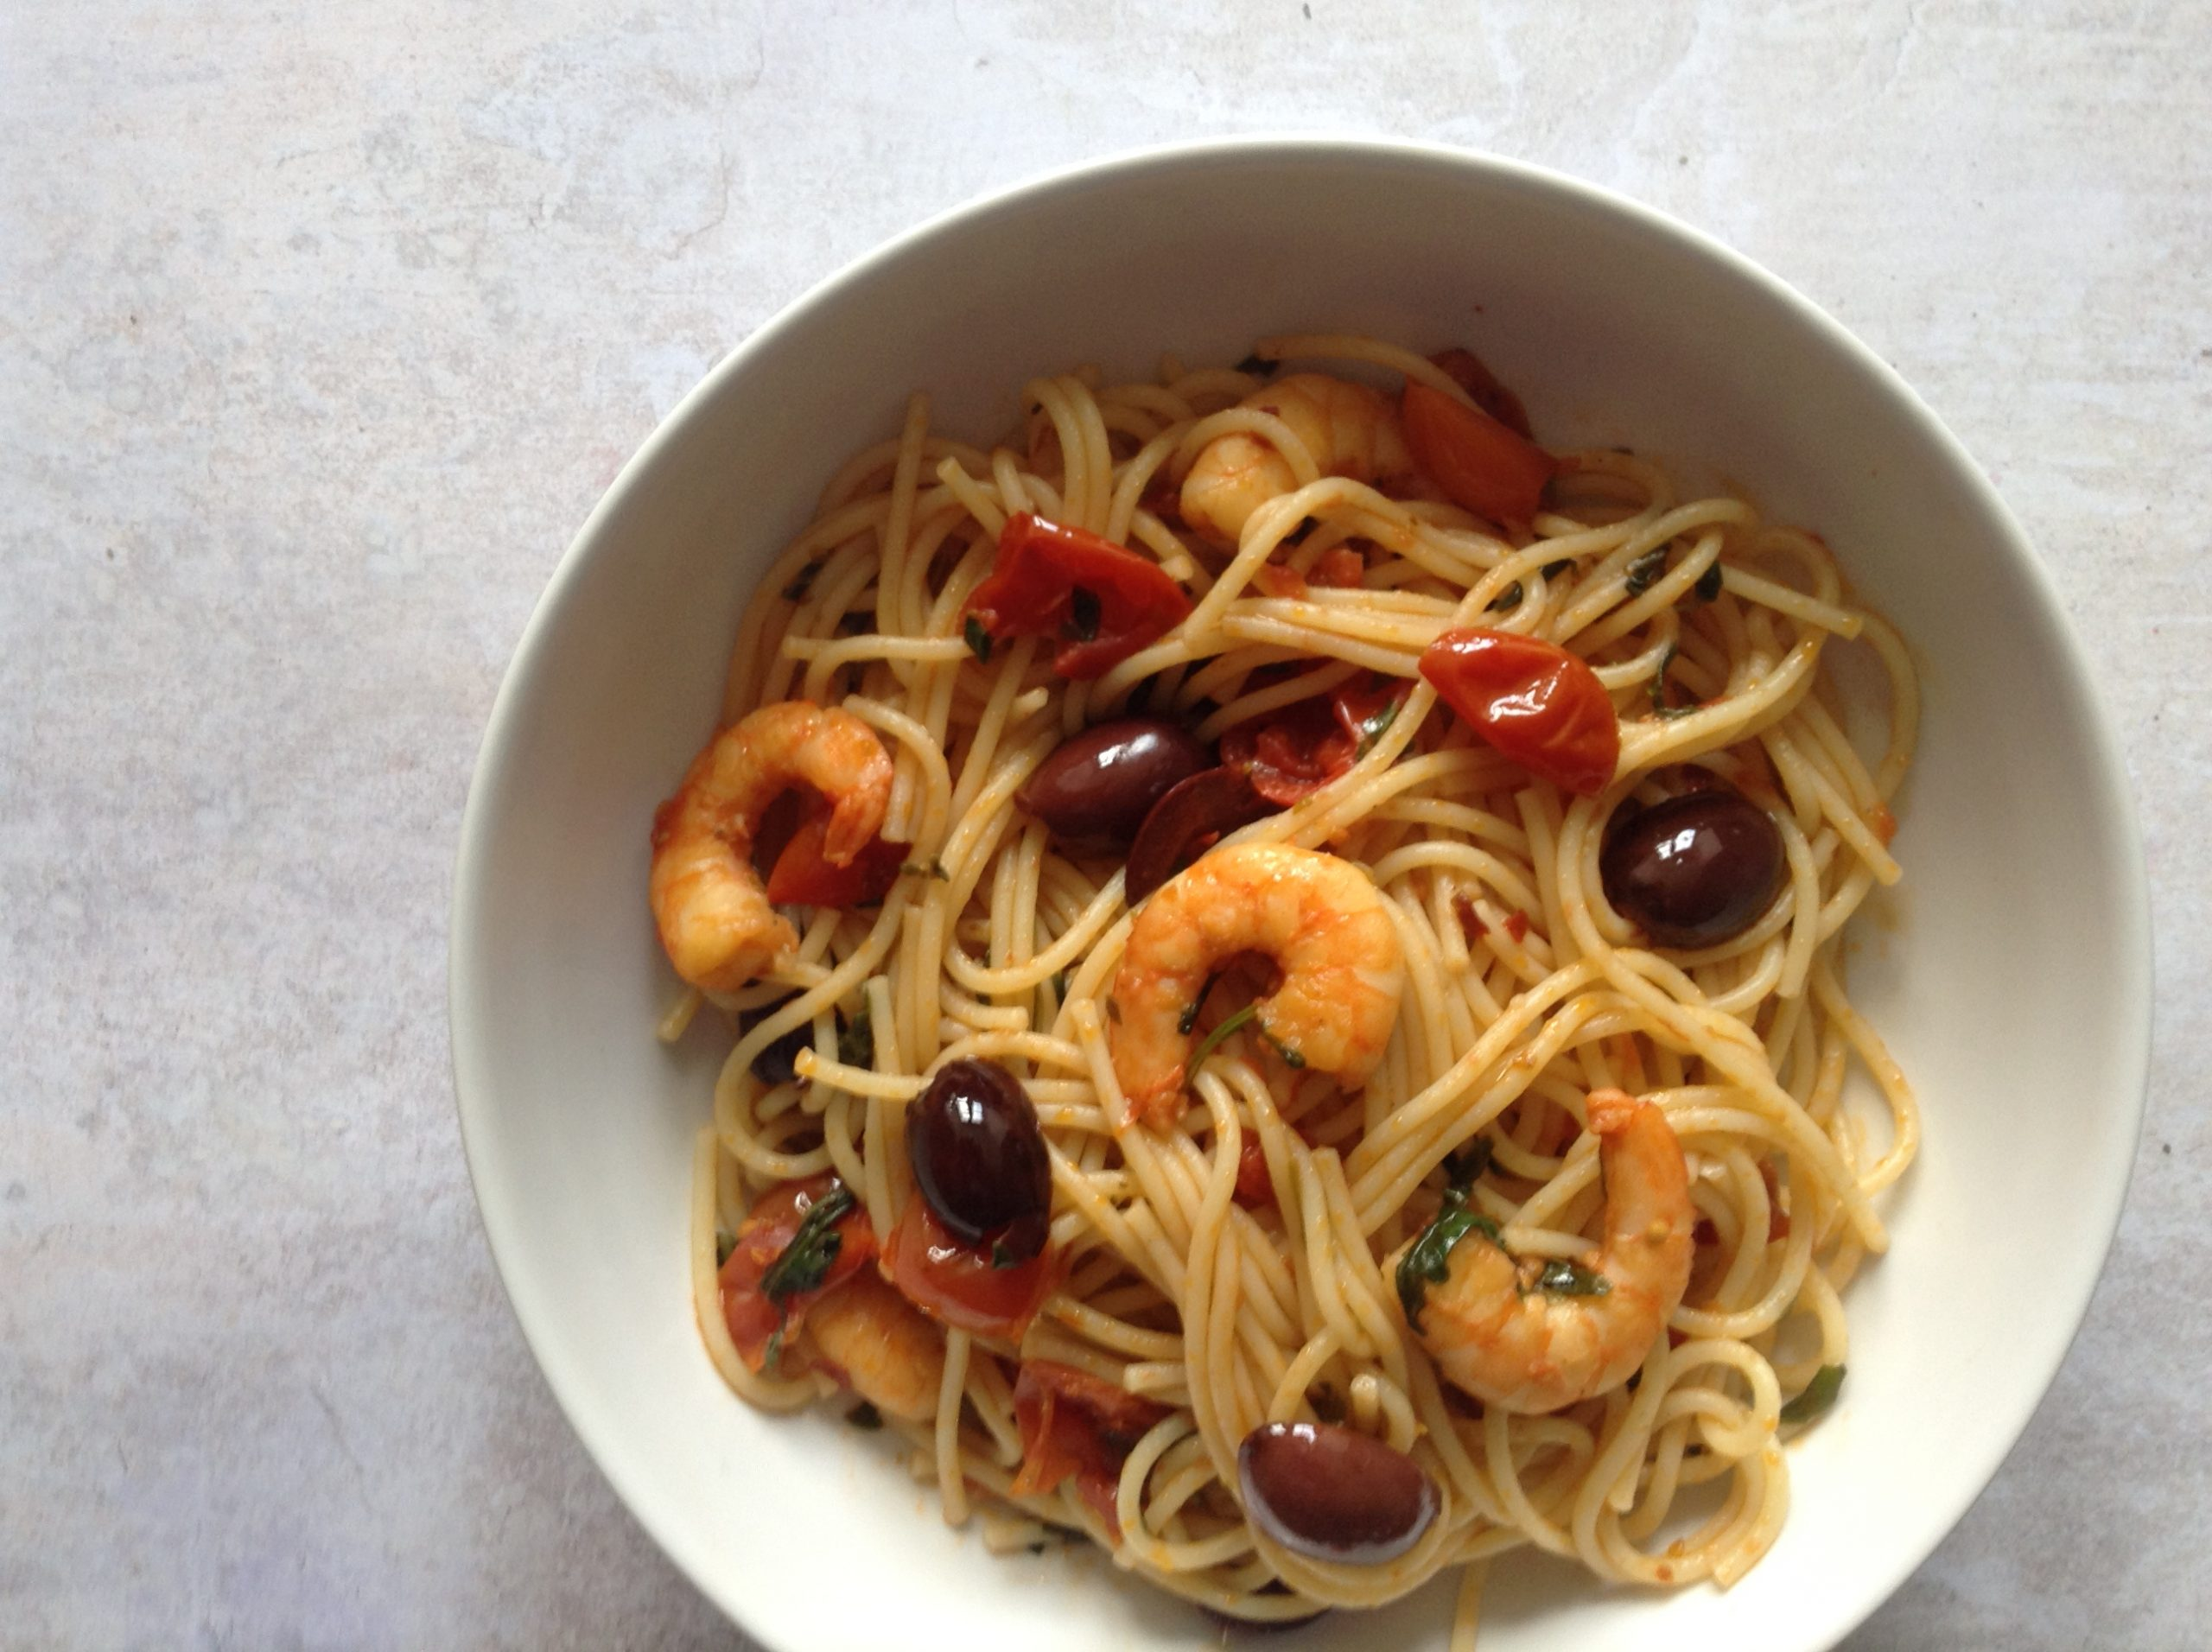 Spaghetti with black olives, king prawns and cherry tomatoes